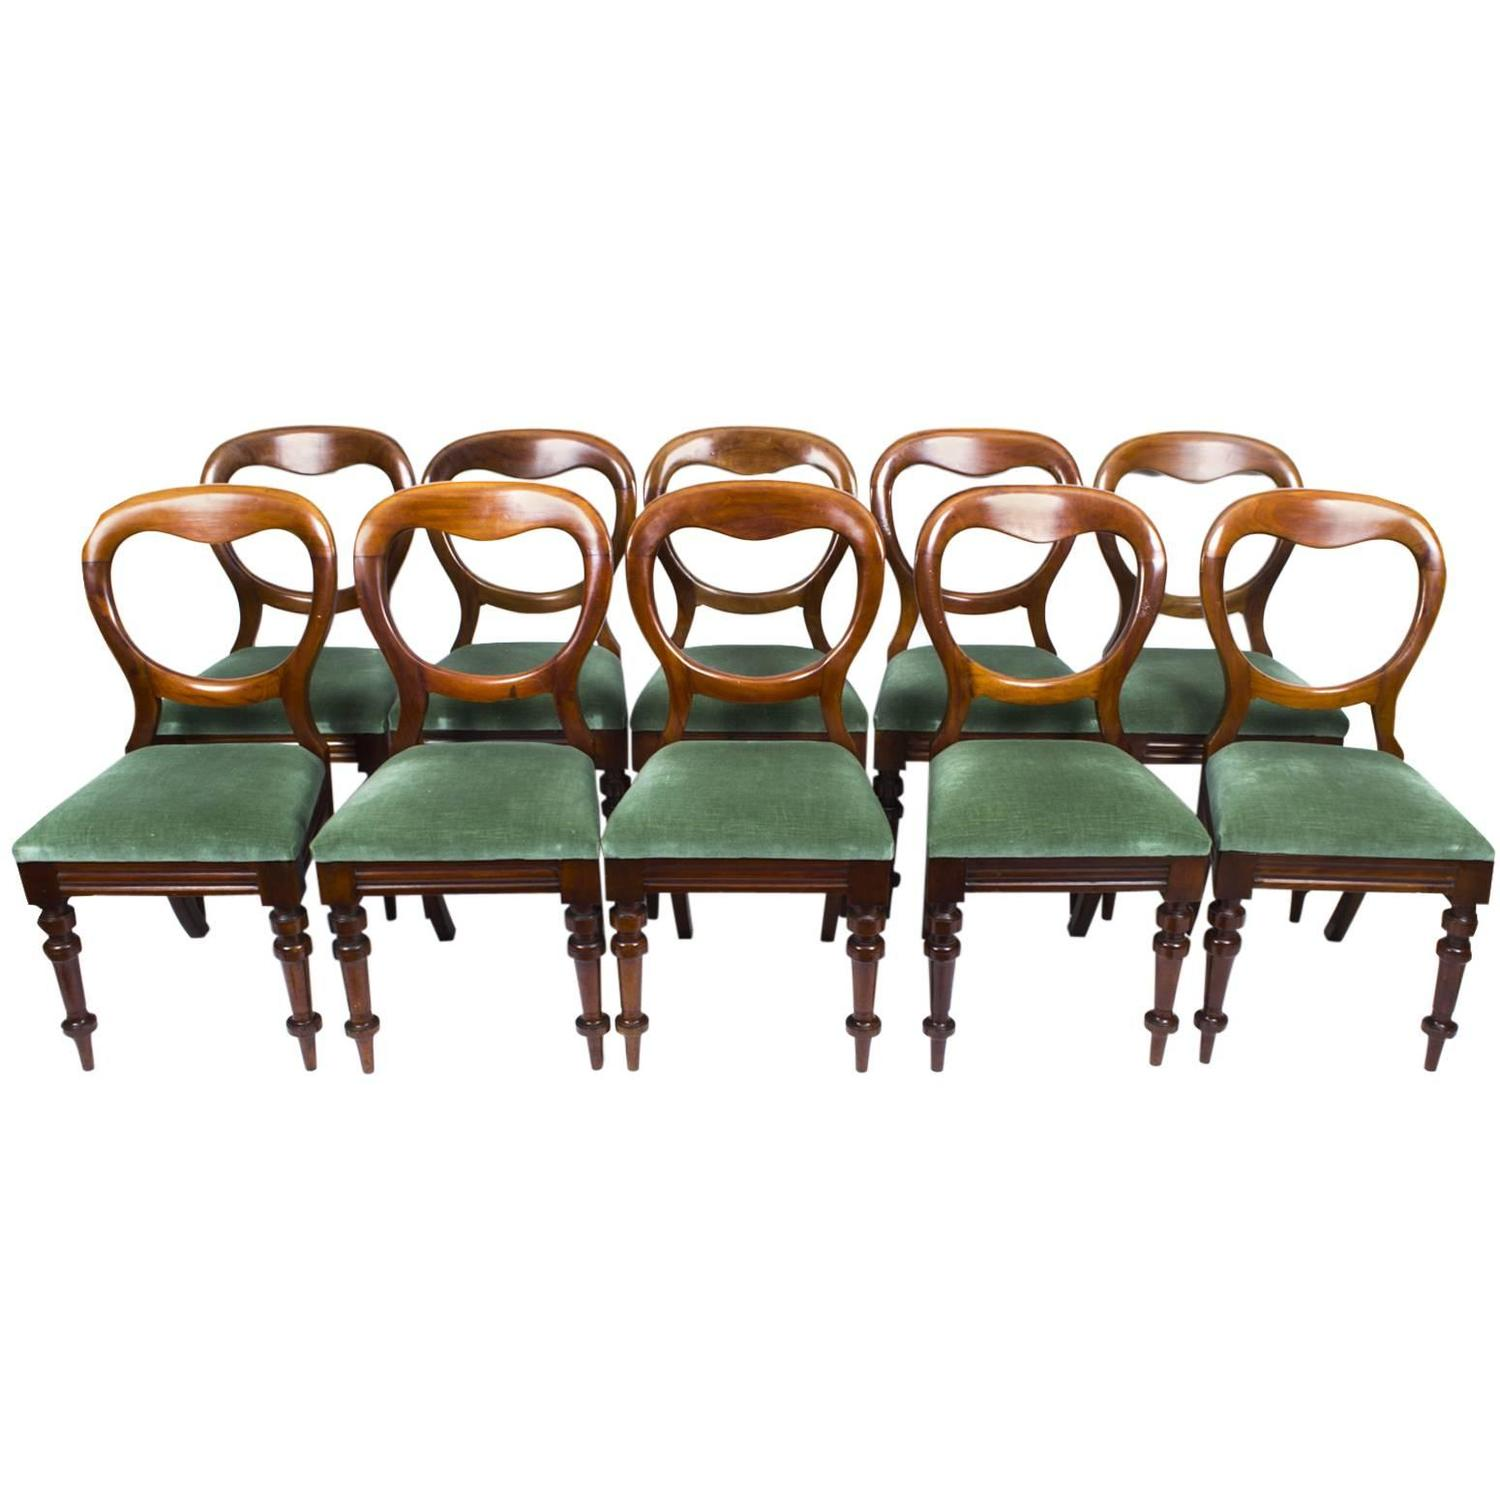 Awesome Antique Set Of Ten Victorian Balloon Back Dining Chairs, Circa 1880 At  1stdibs